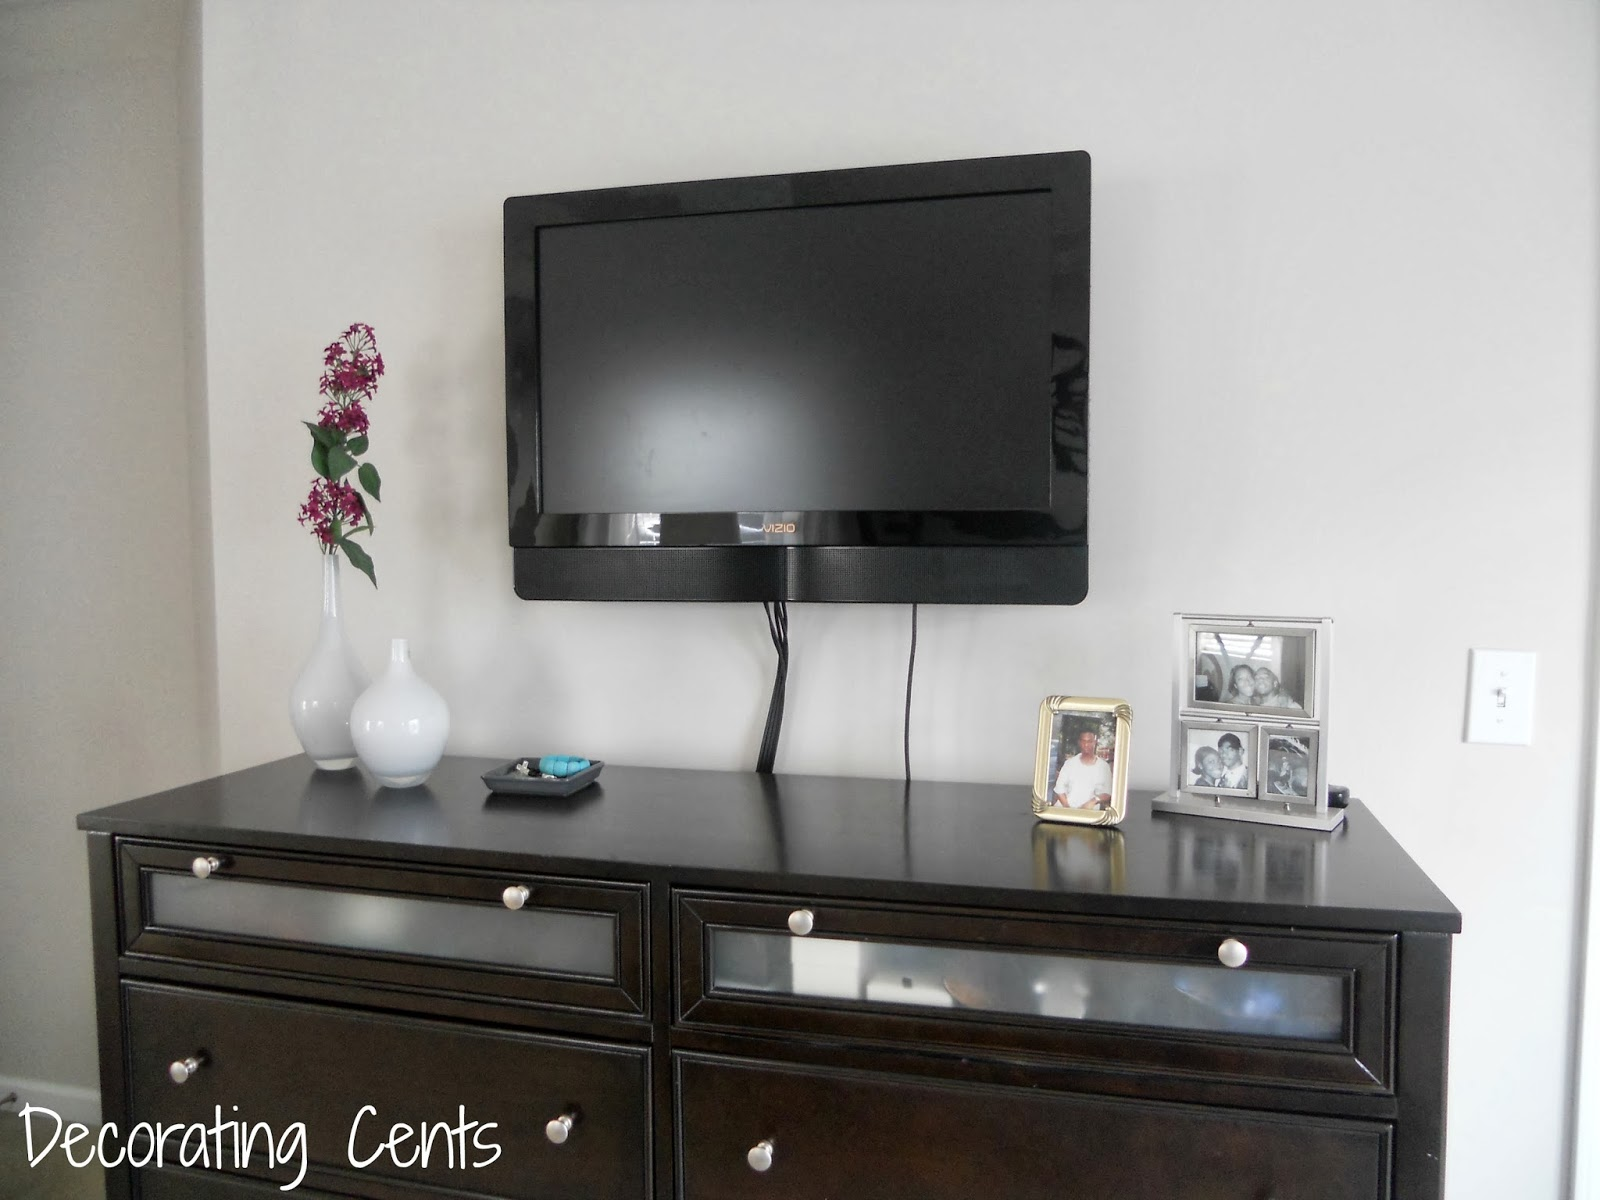 Decorating Cents: Wall Mounted TV and YesComUSA